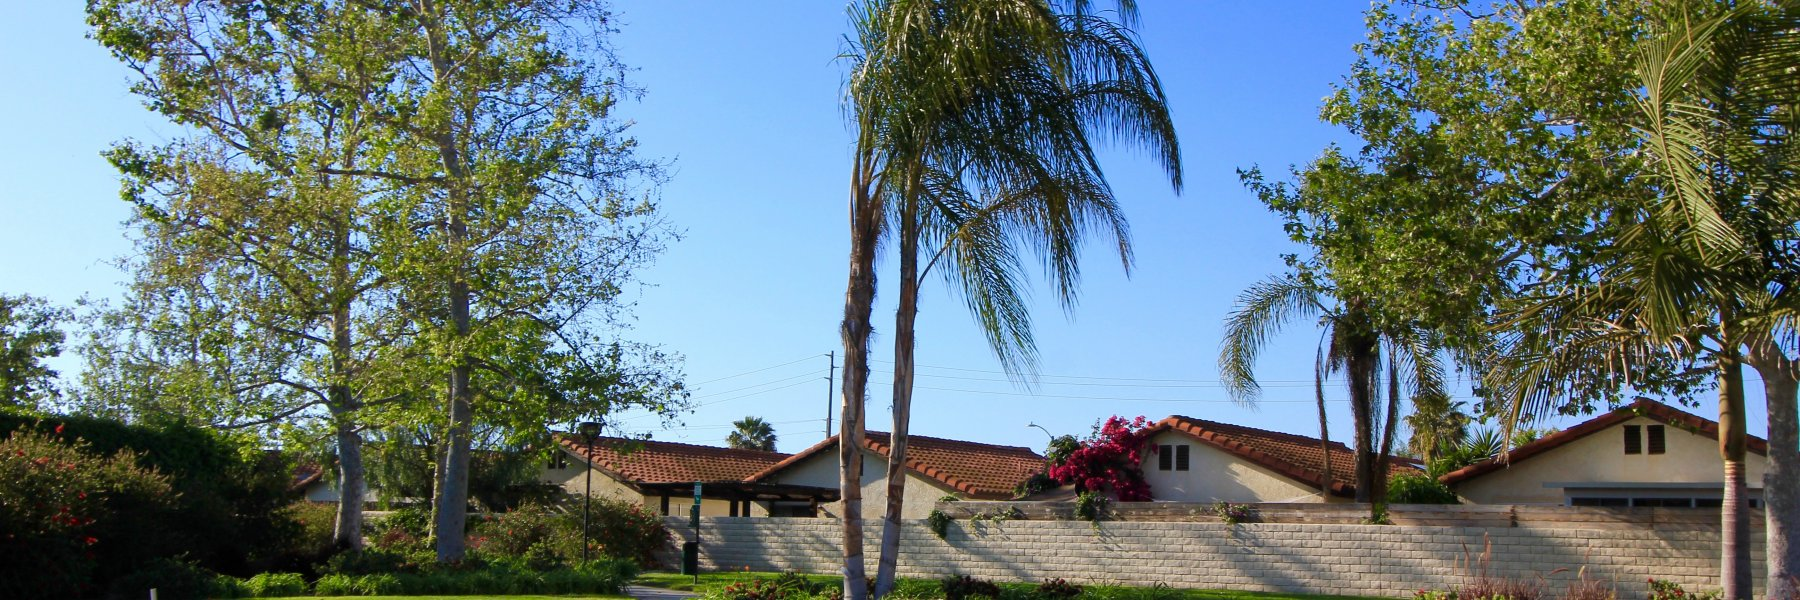 Murray Mission is a community of homes in Oceanside California